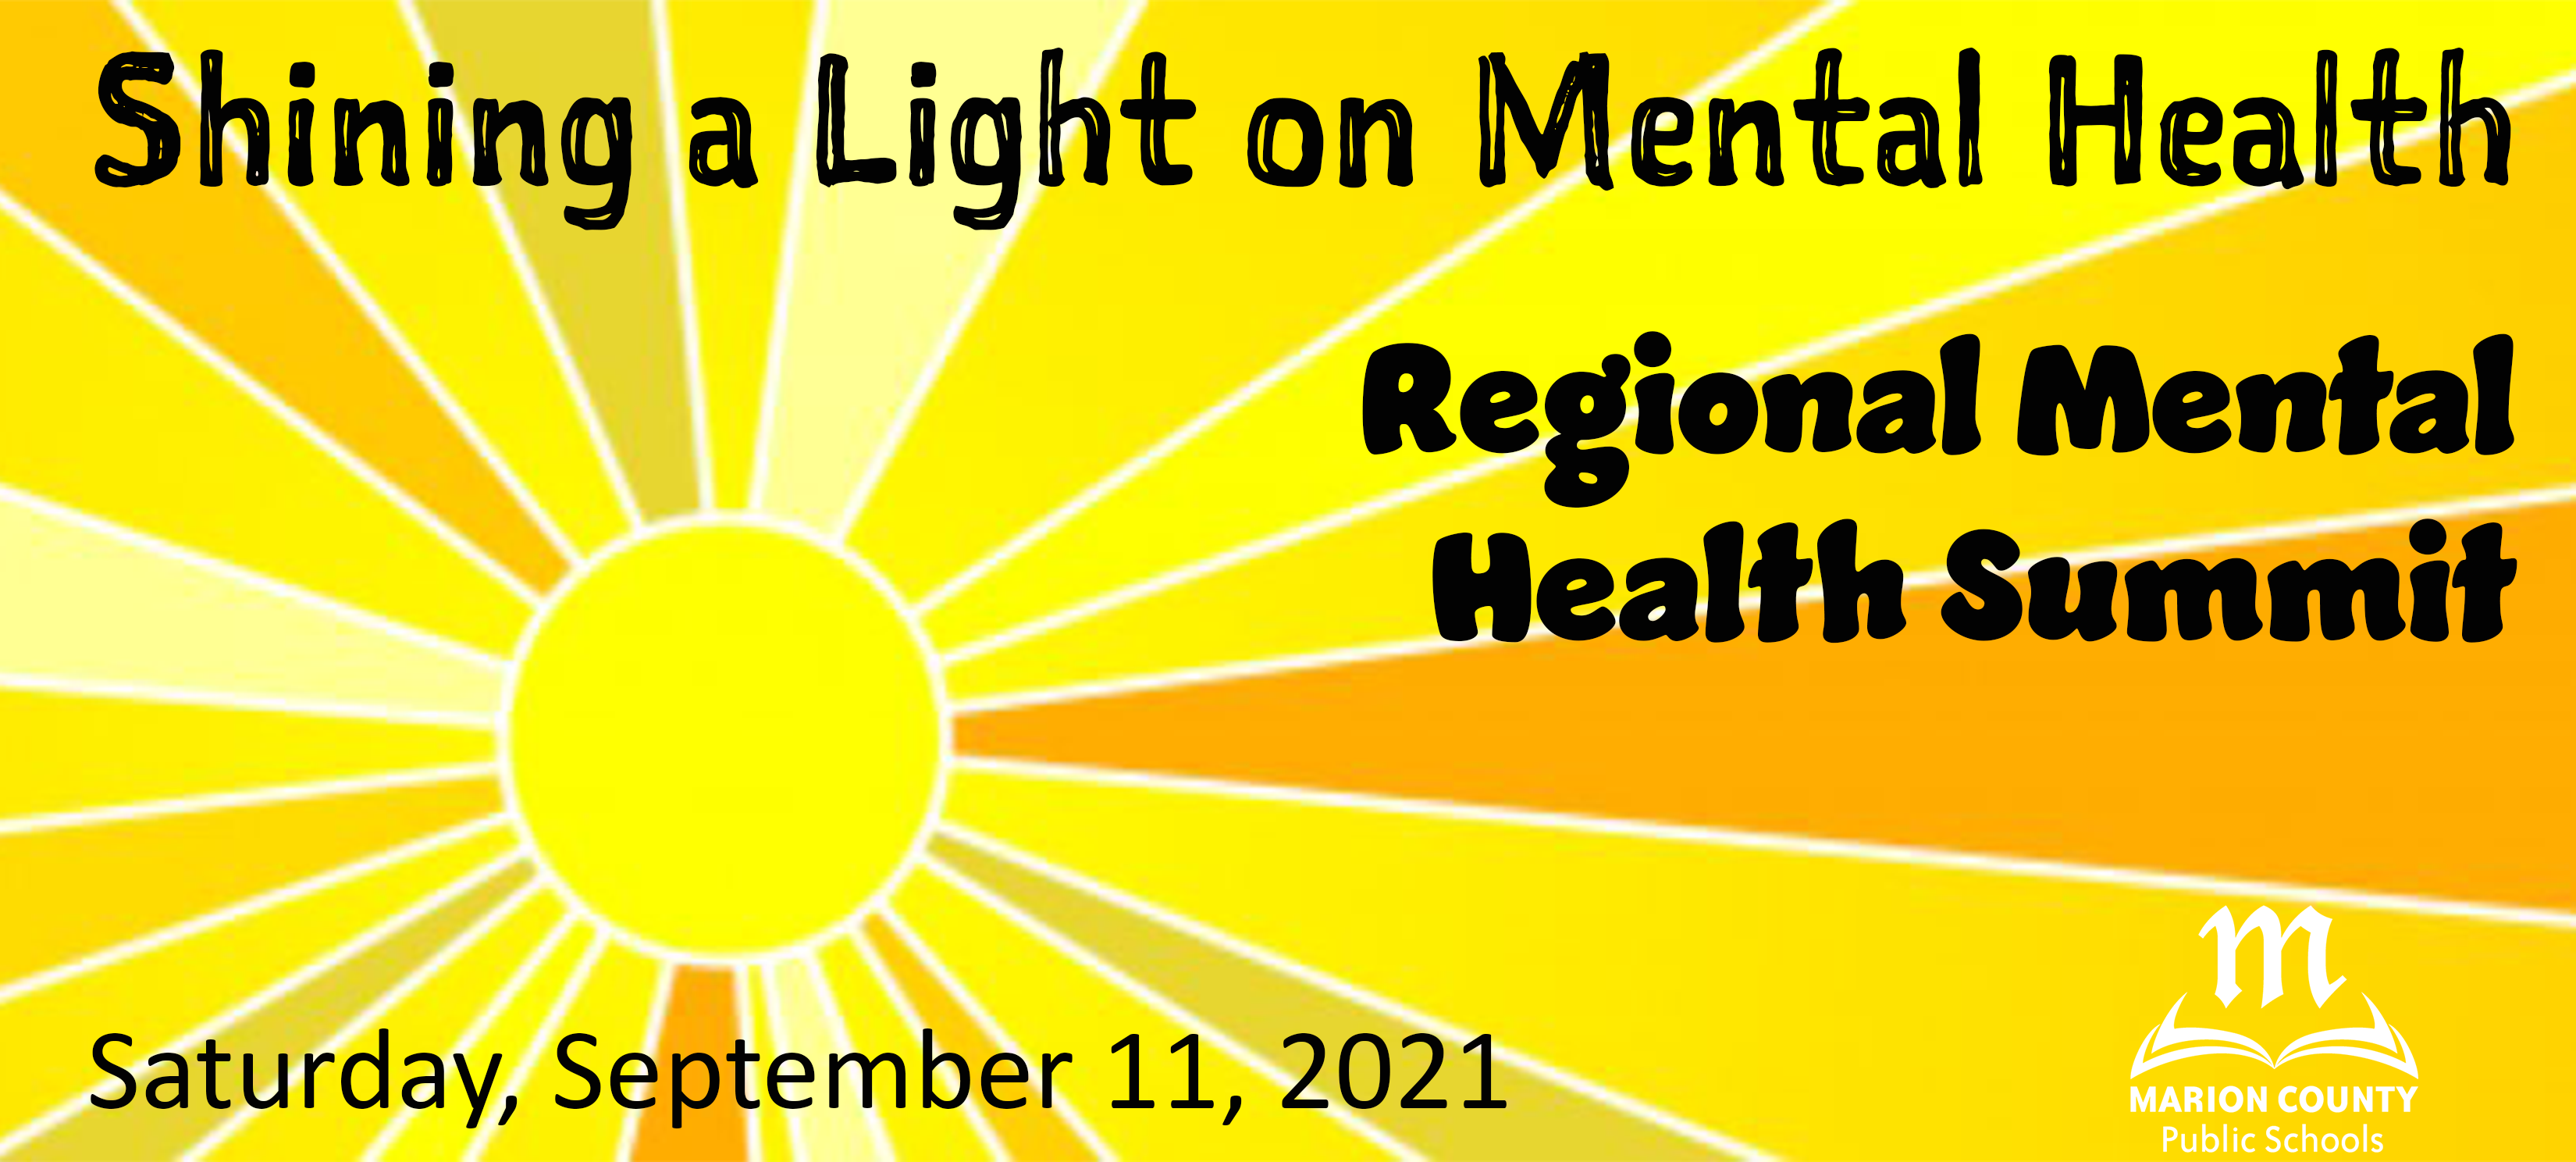 Image of sunshine with text: Shining a Light on Mental Health Regional Mental Health Summit